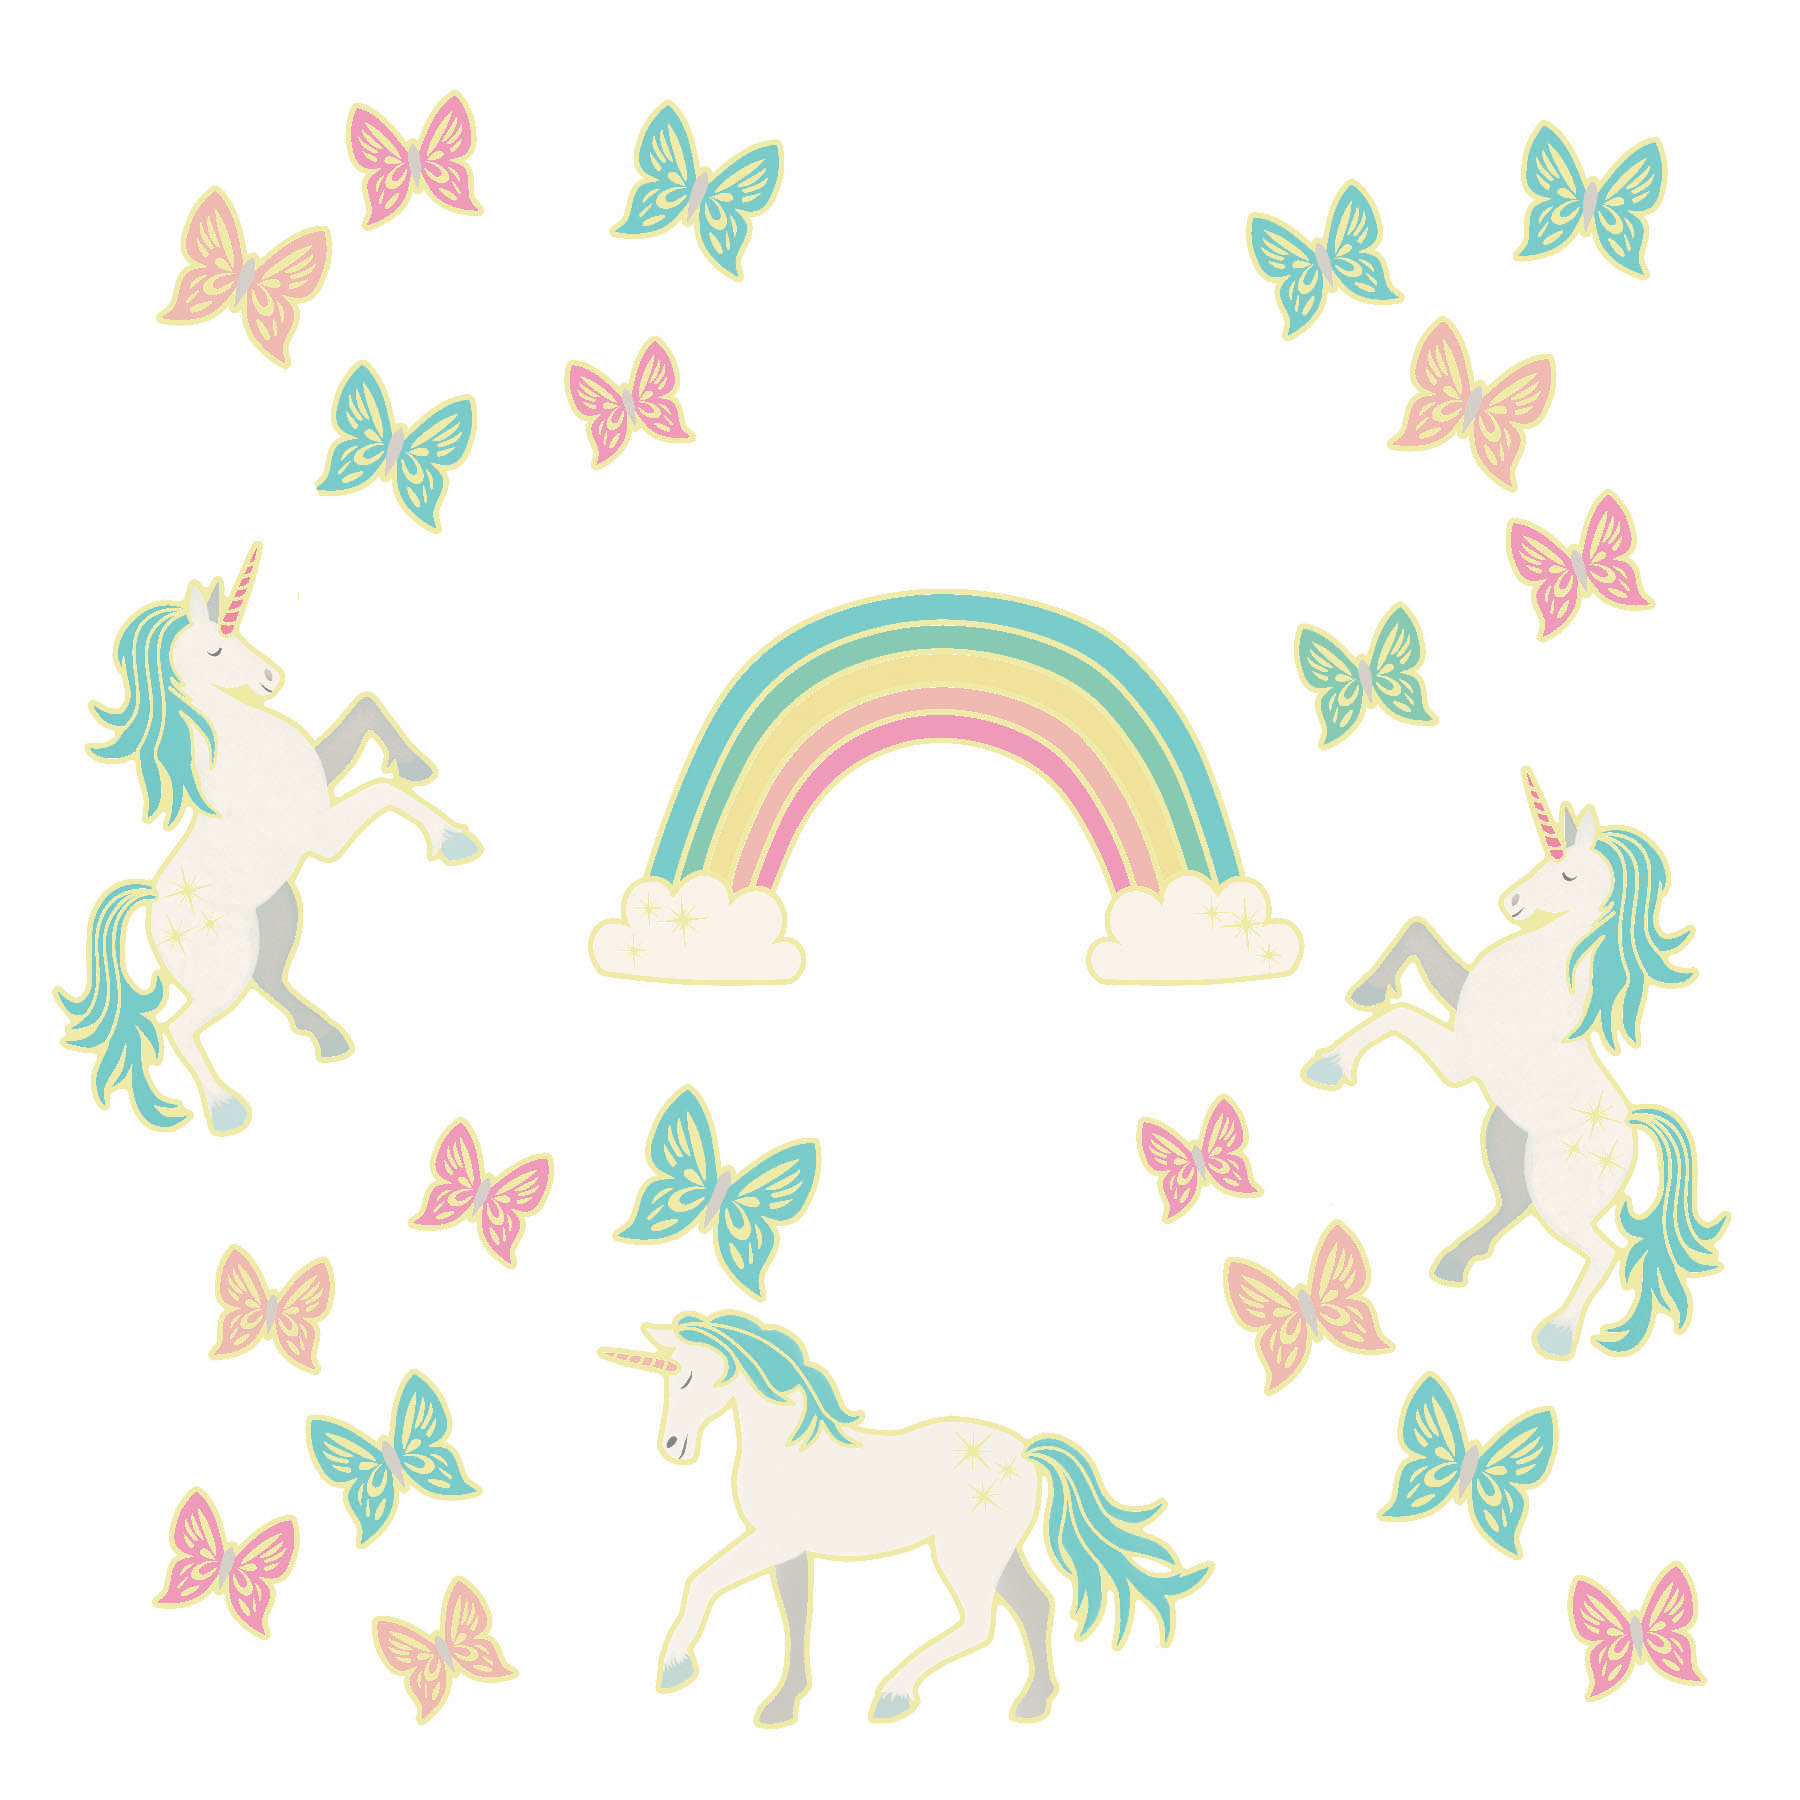 WallPops Enchanting Unicorns Glow in the Dark Wall Art Kit